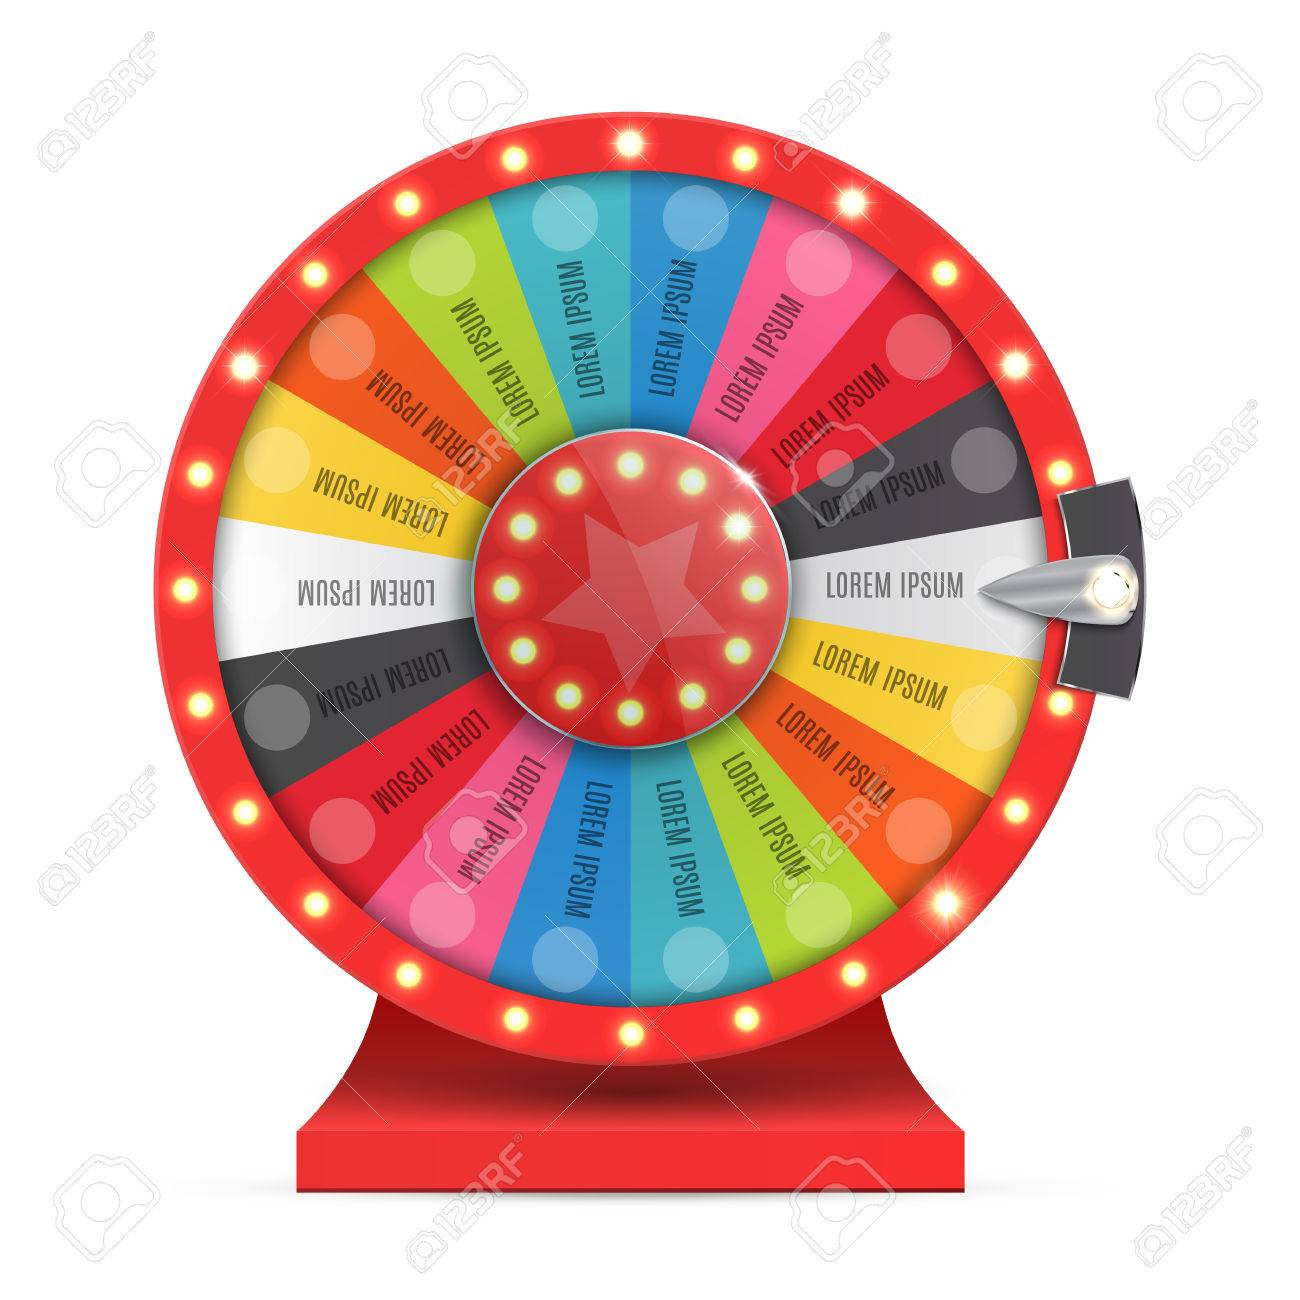 Colorful wheel of luck or fortune infographic. Vector illustration - 69007329